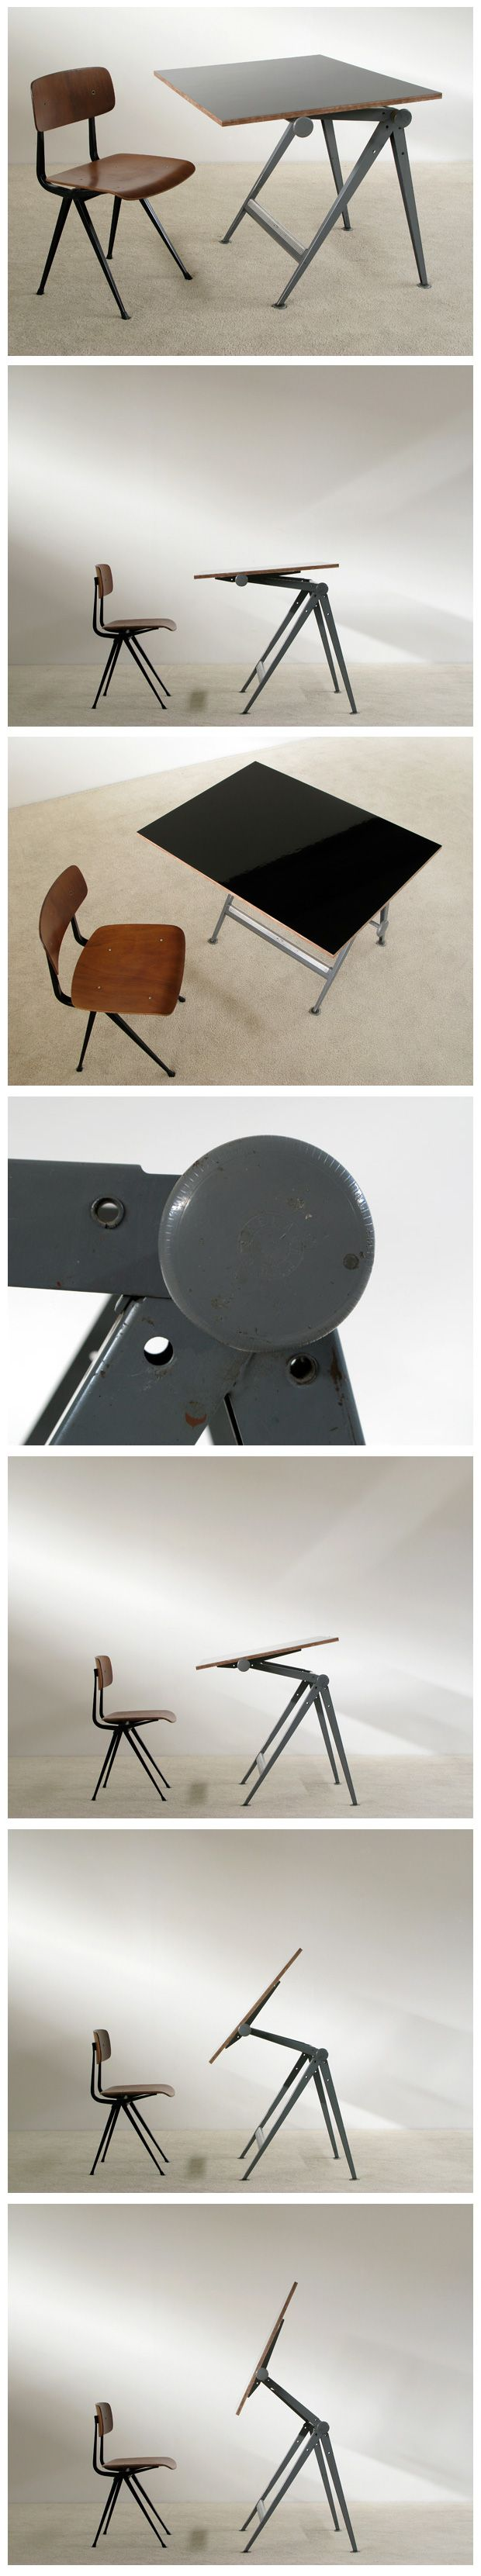 Industrial Reply drafting table and chair Wim Rietveld.  Love. Edit: with a Result chair by Friso Kramer.